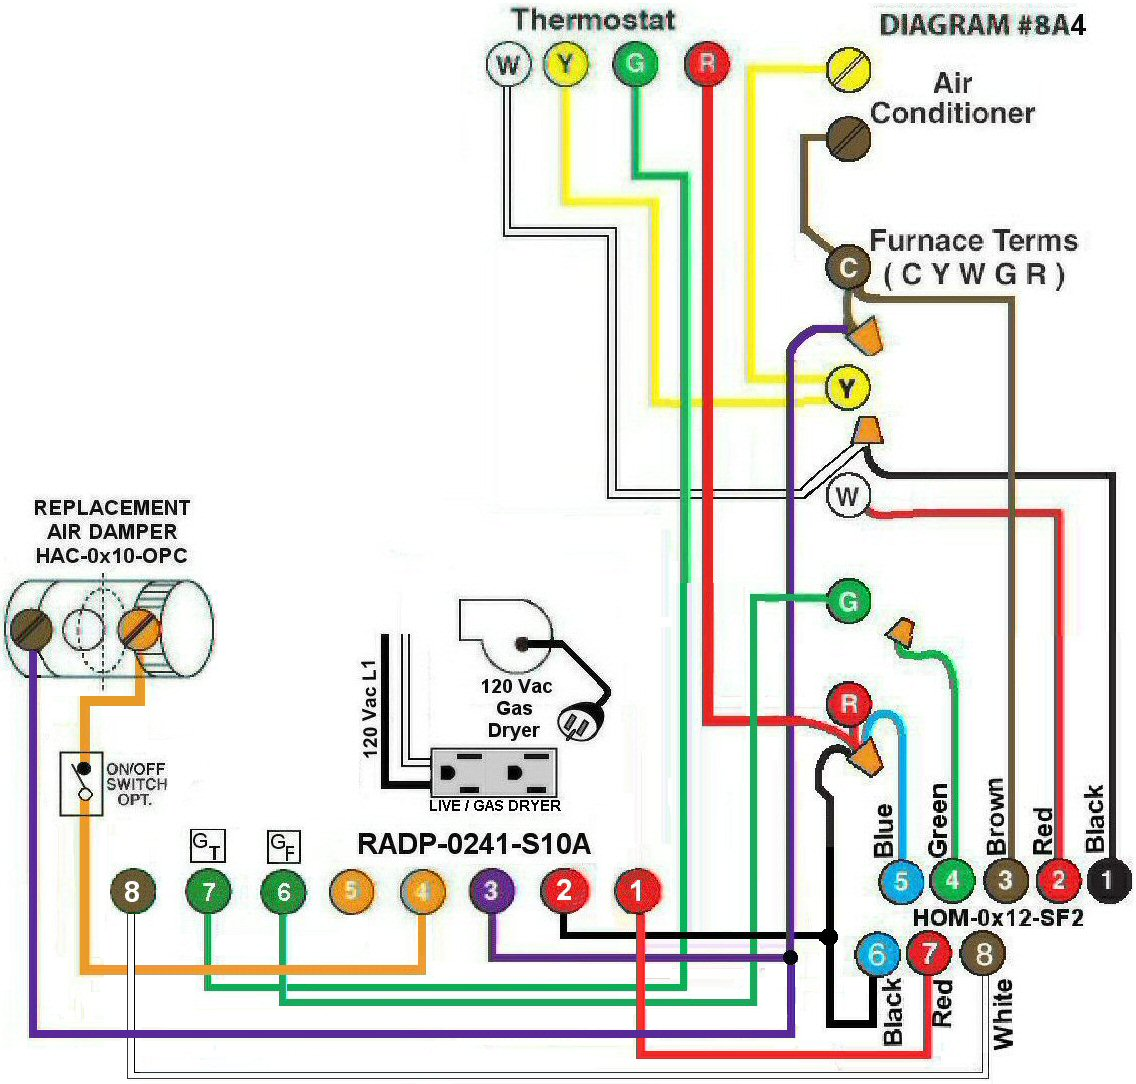 wiring diagram for electric furnace dcc layout model train diagrams free engine image intertherm sequencer air